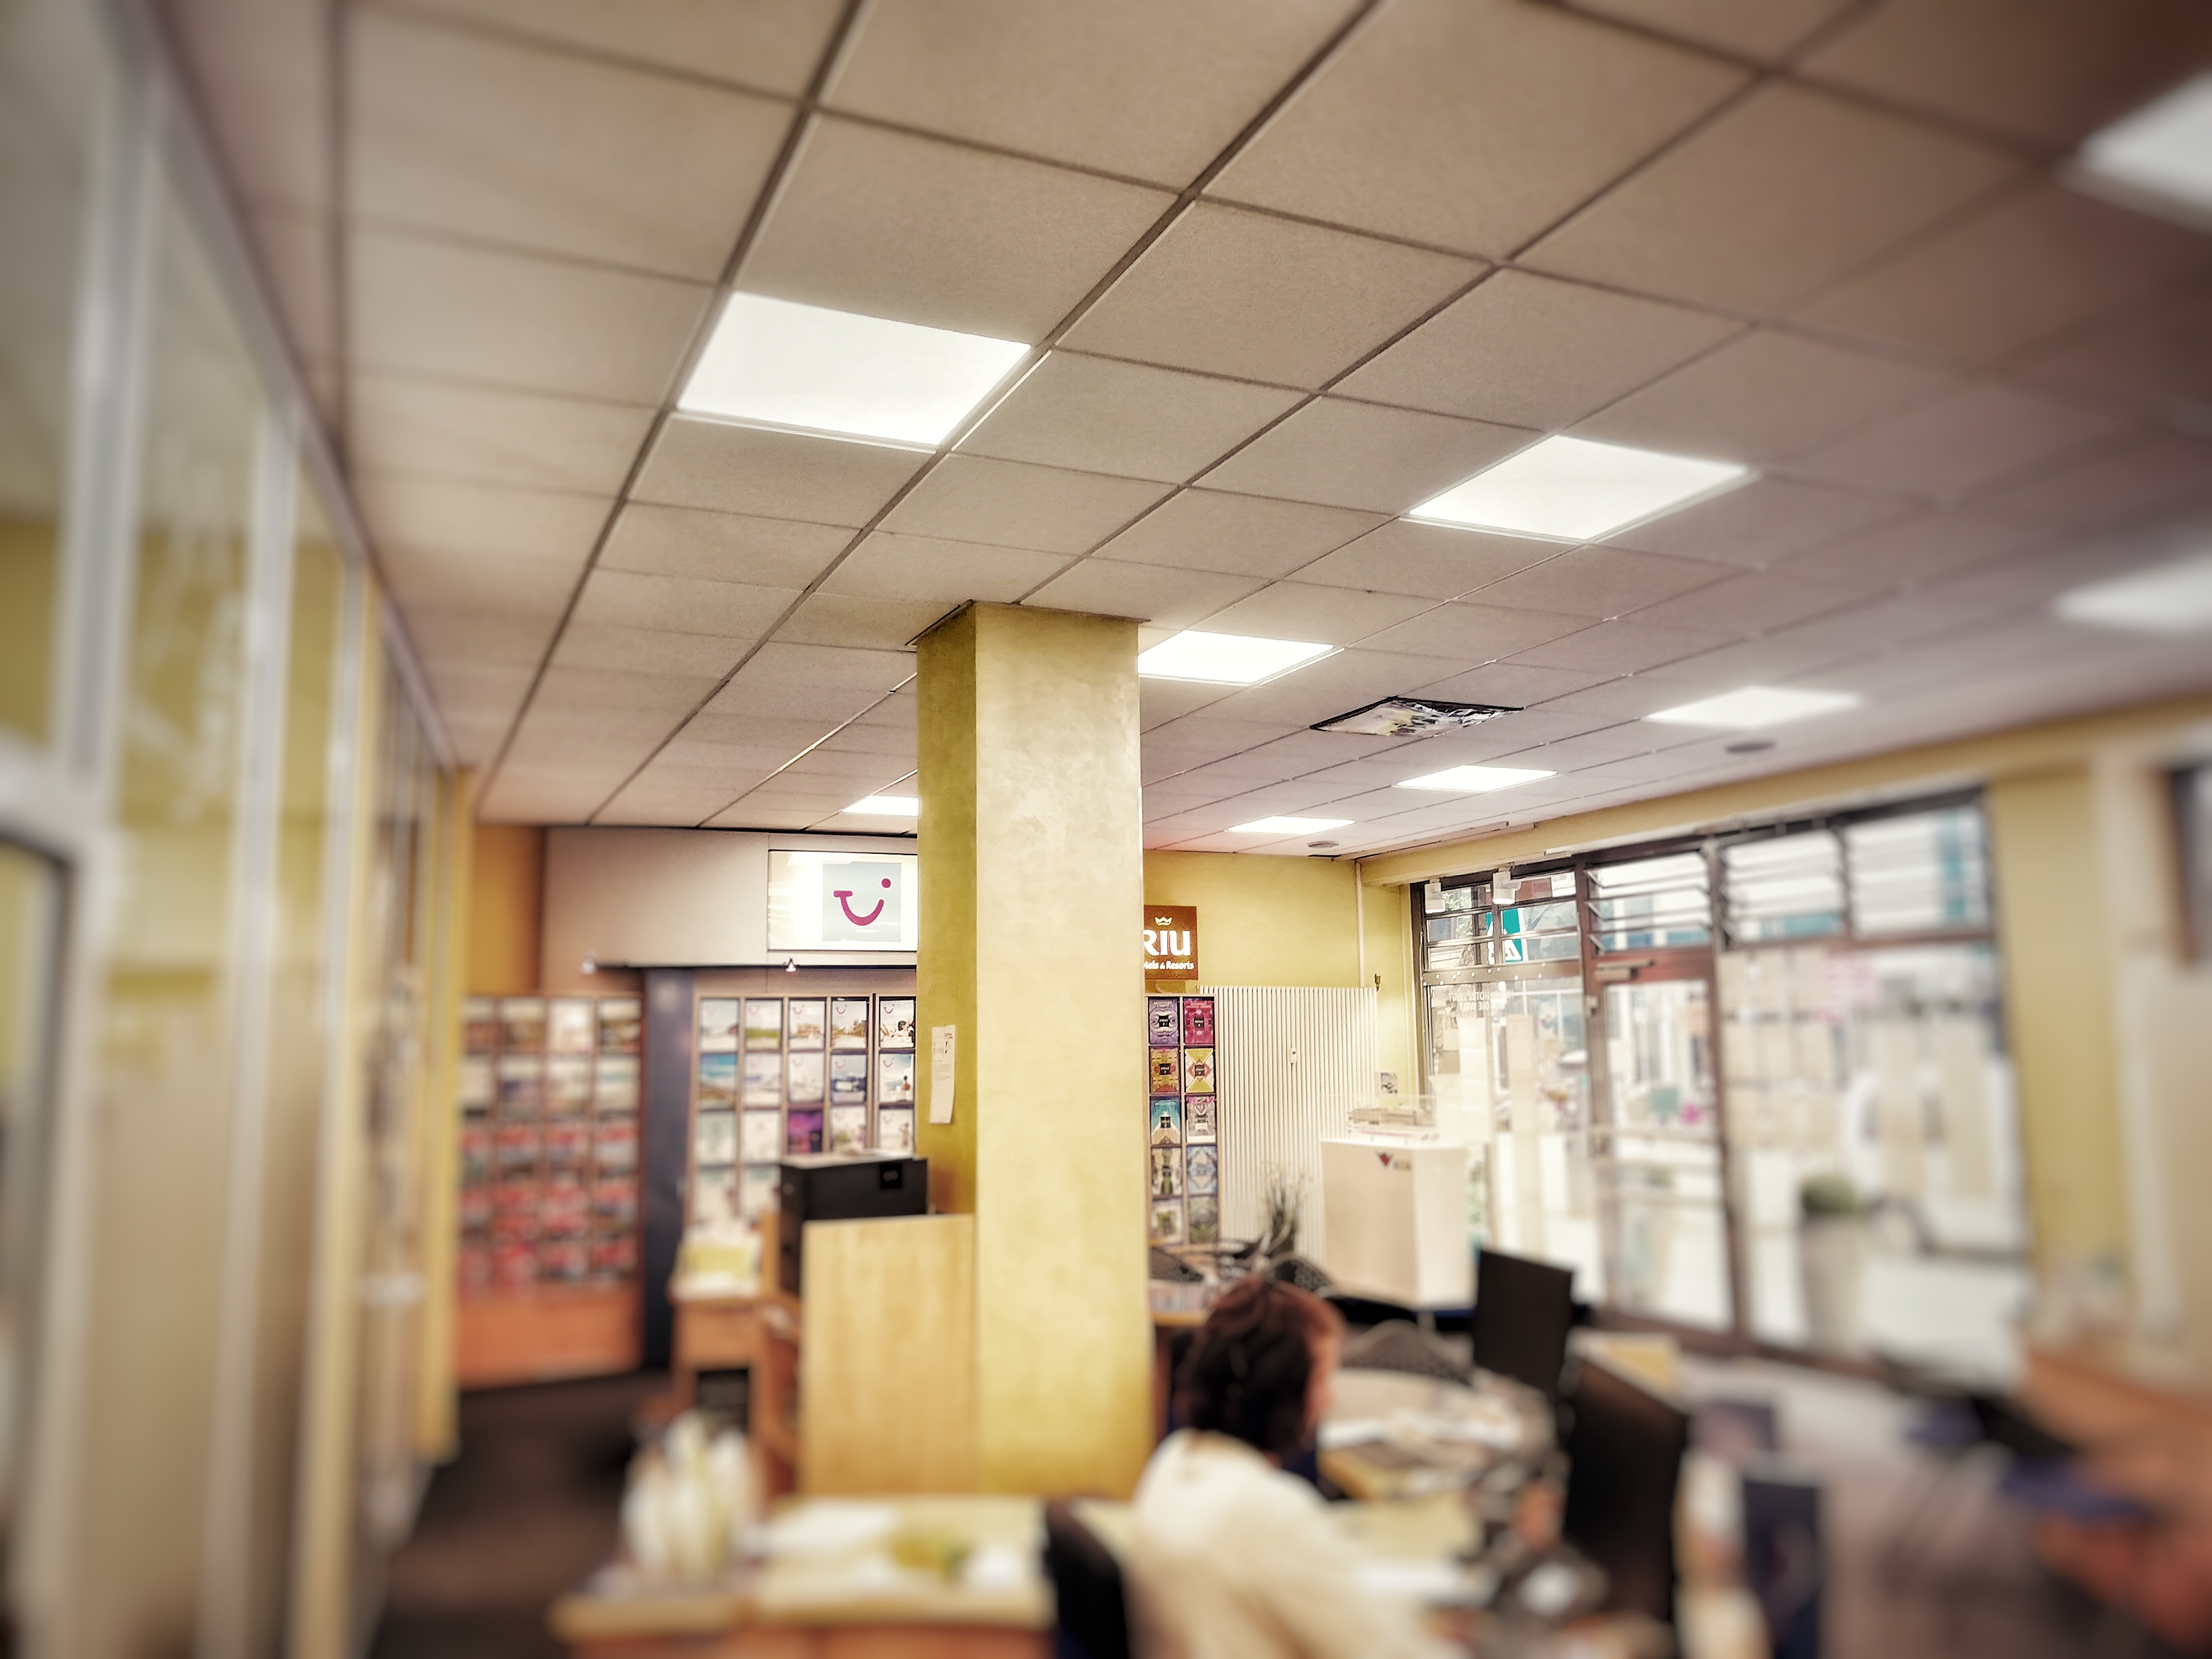 lakus-infrared-heating-panels-in-systemplafond